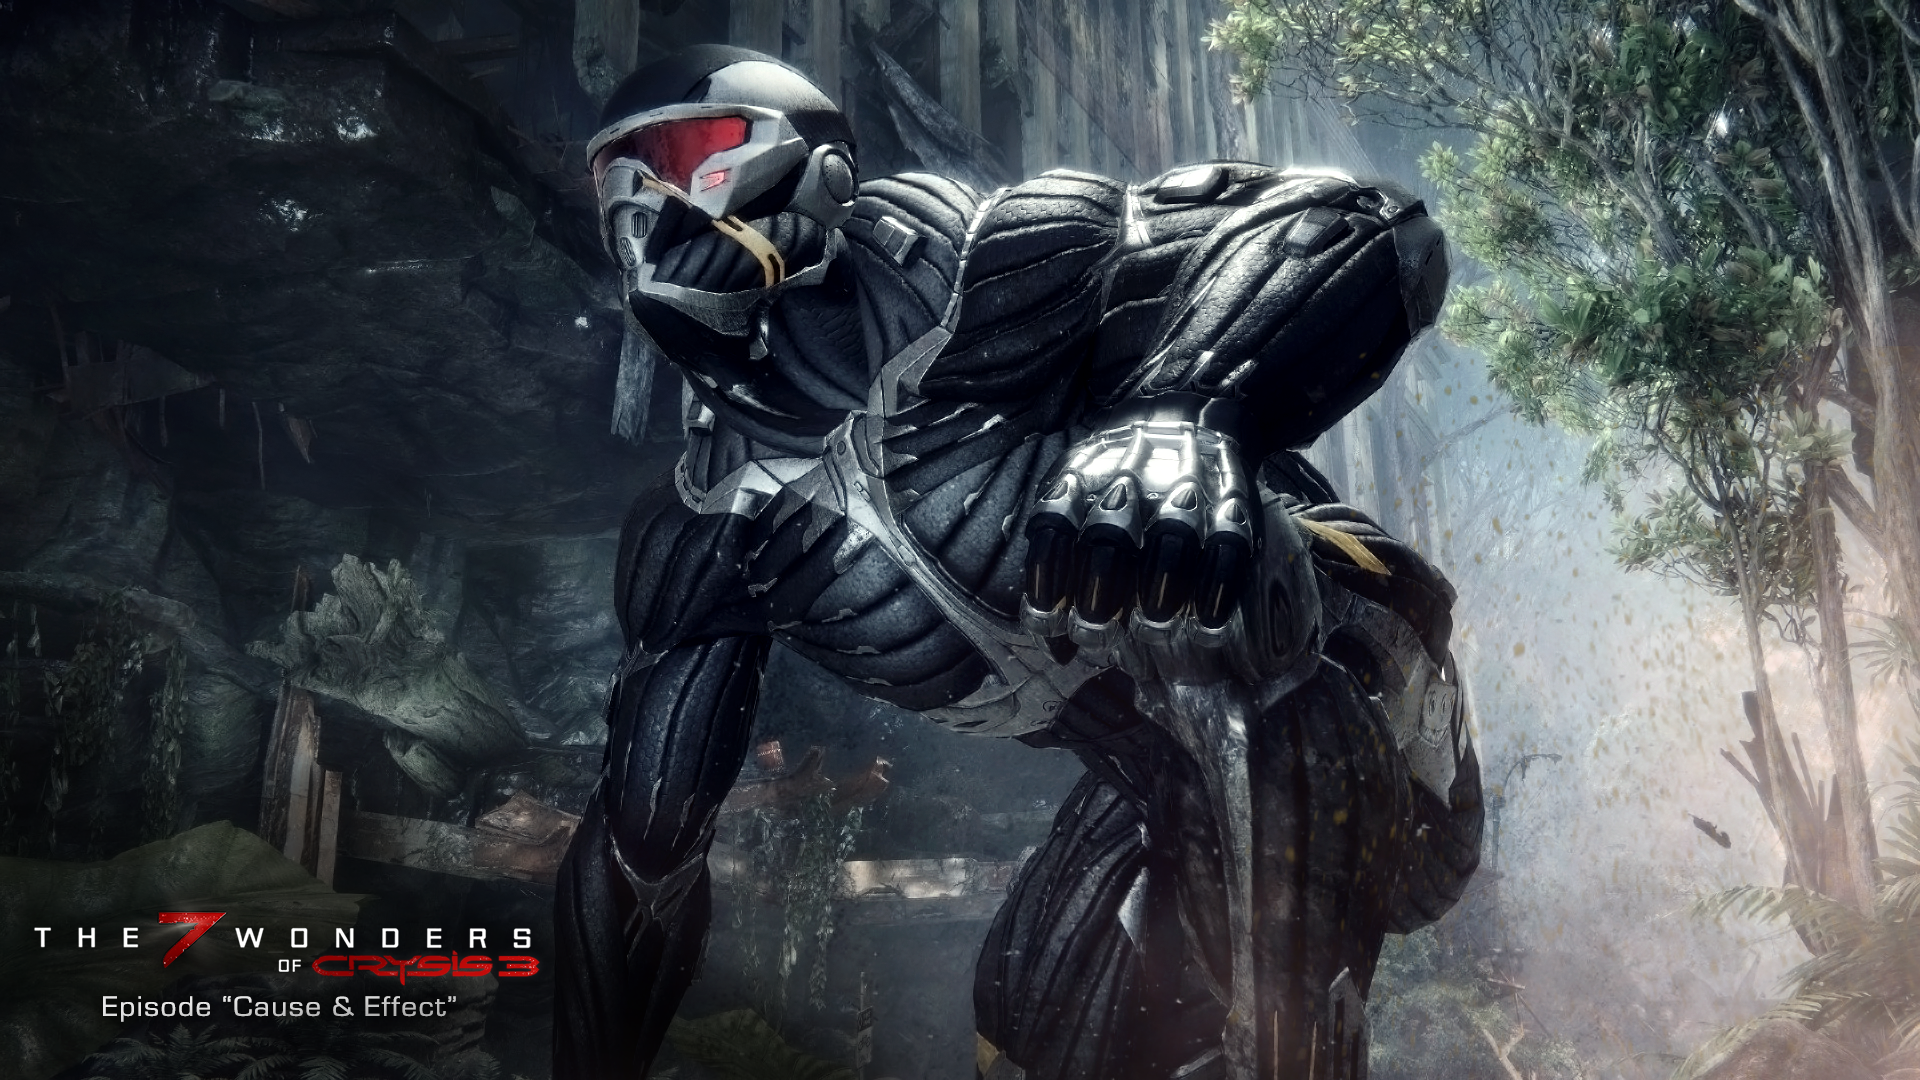 crysis 4 wallpaper hd-#3